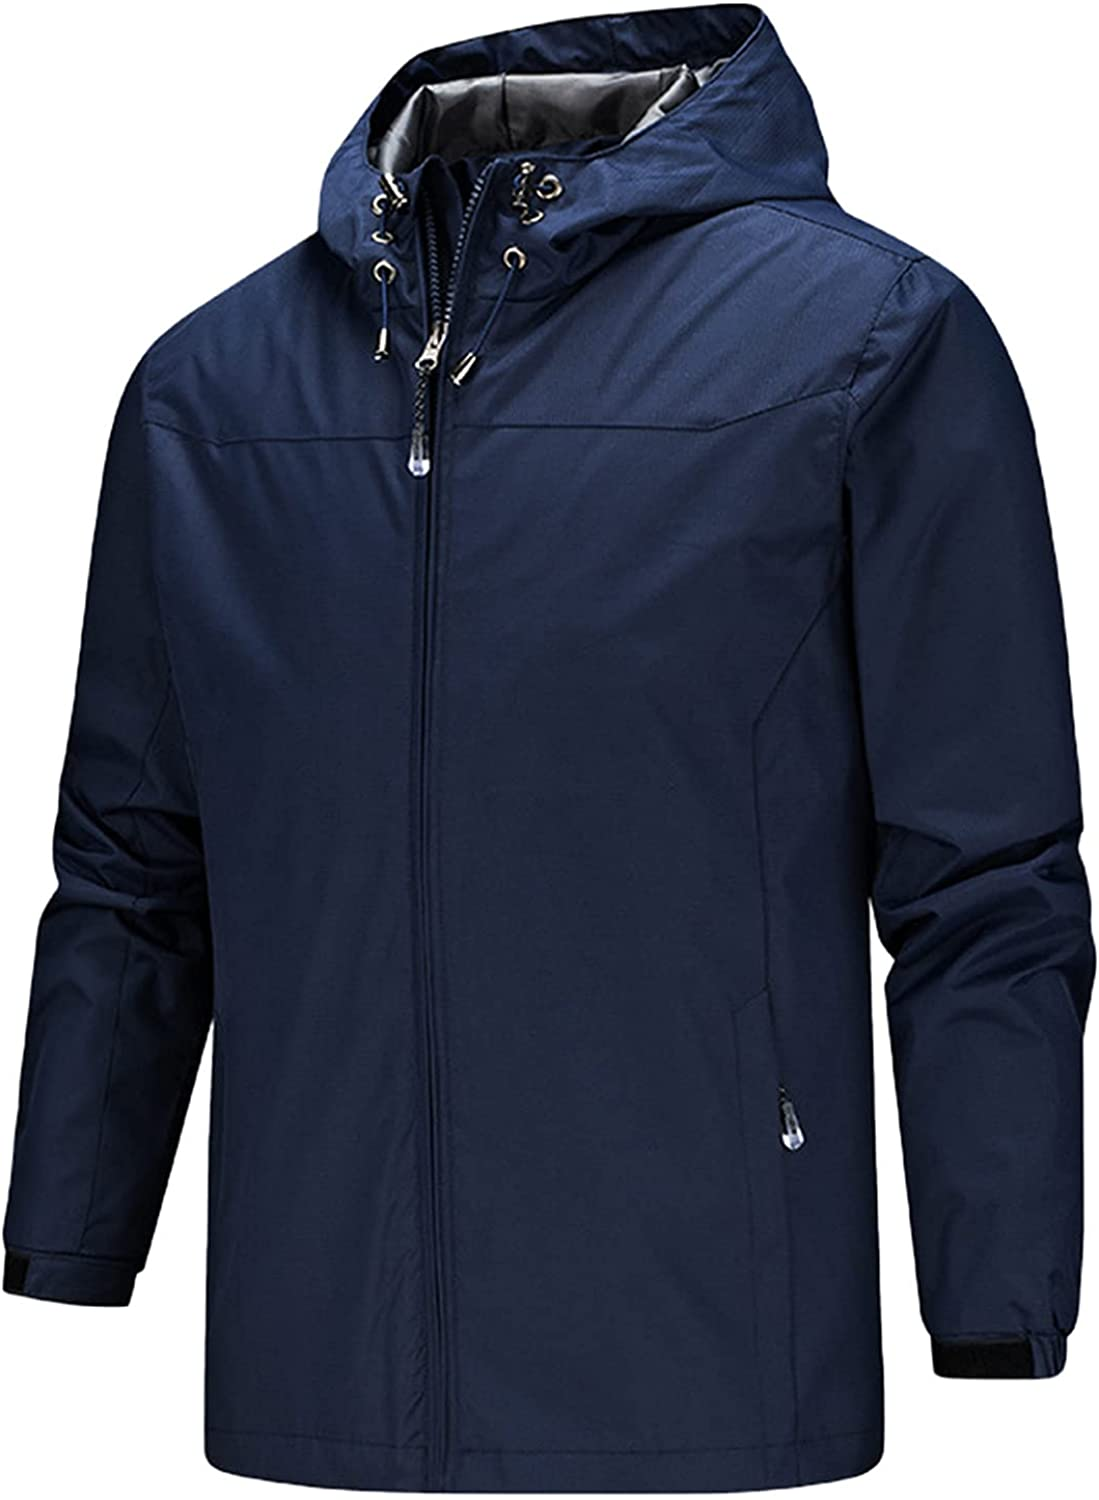 Plus Size Raincoats Mens Waterproof Breathable Hooded Trench Coats Thin Windbreaker Lightweight Outdoor Travel Jacket